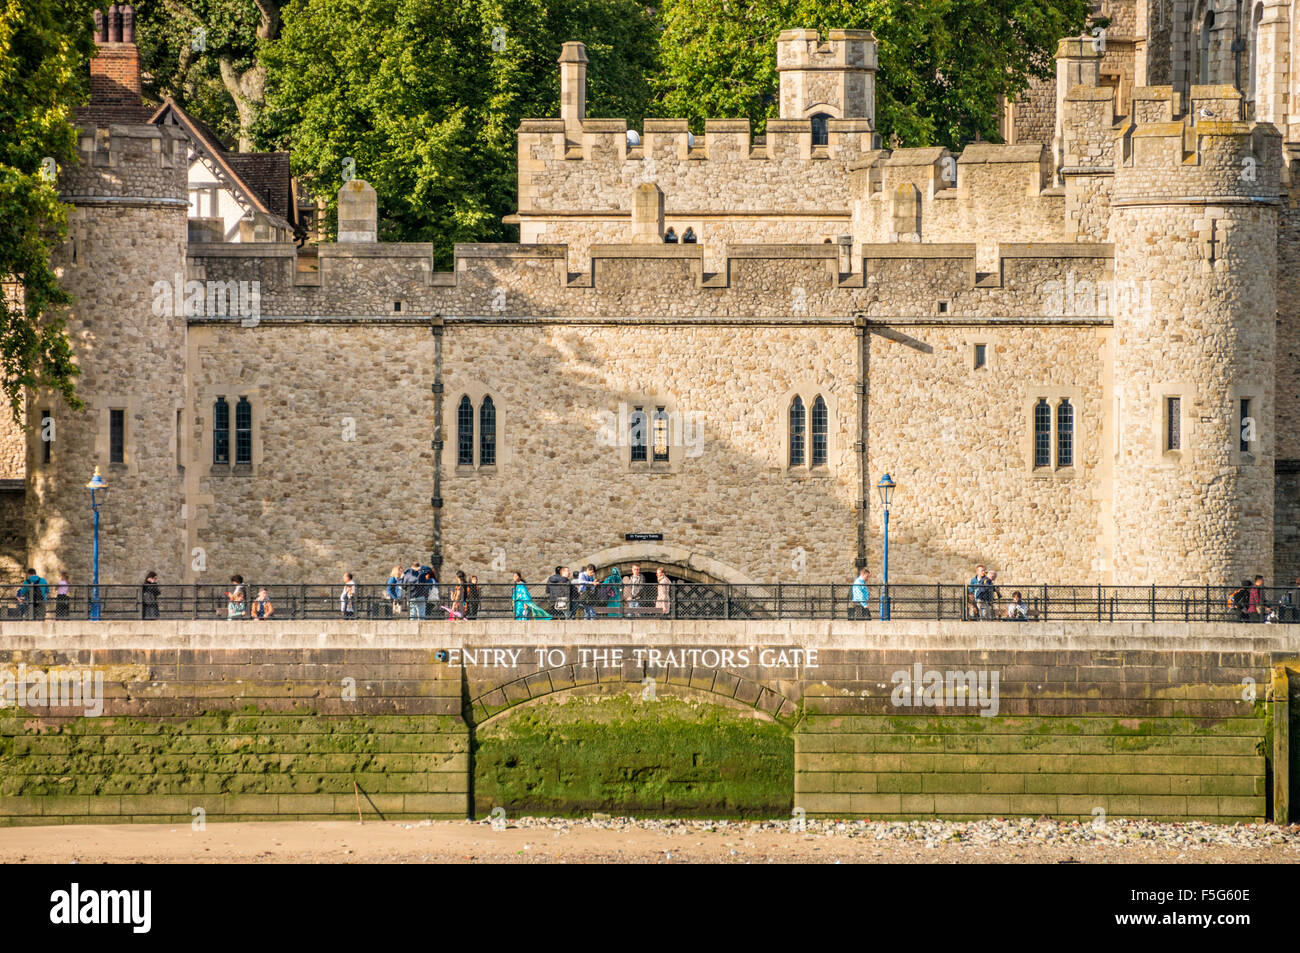 Entry to the Traitors gate and castle walls Tower of London view City of London England GB UK EU Europe - Stock Image